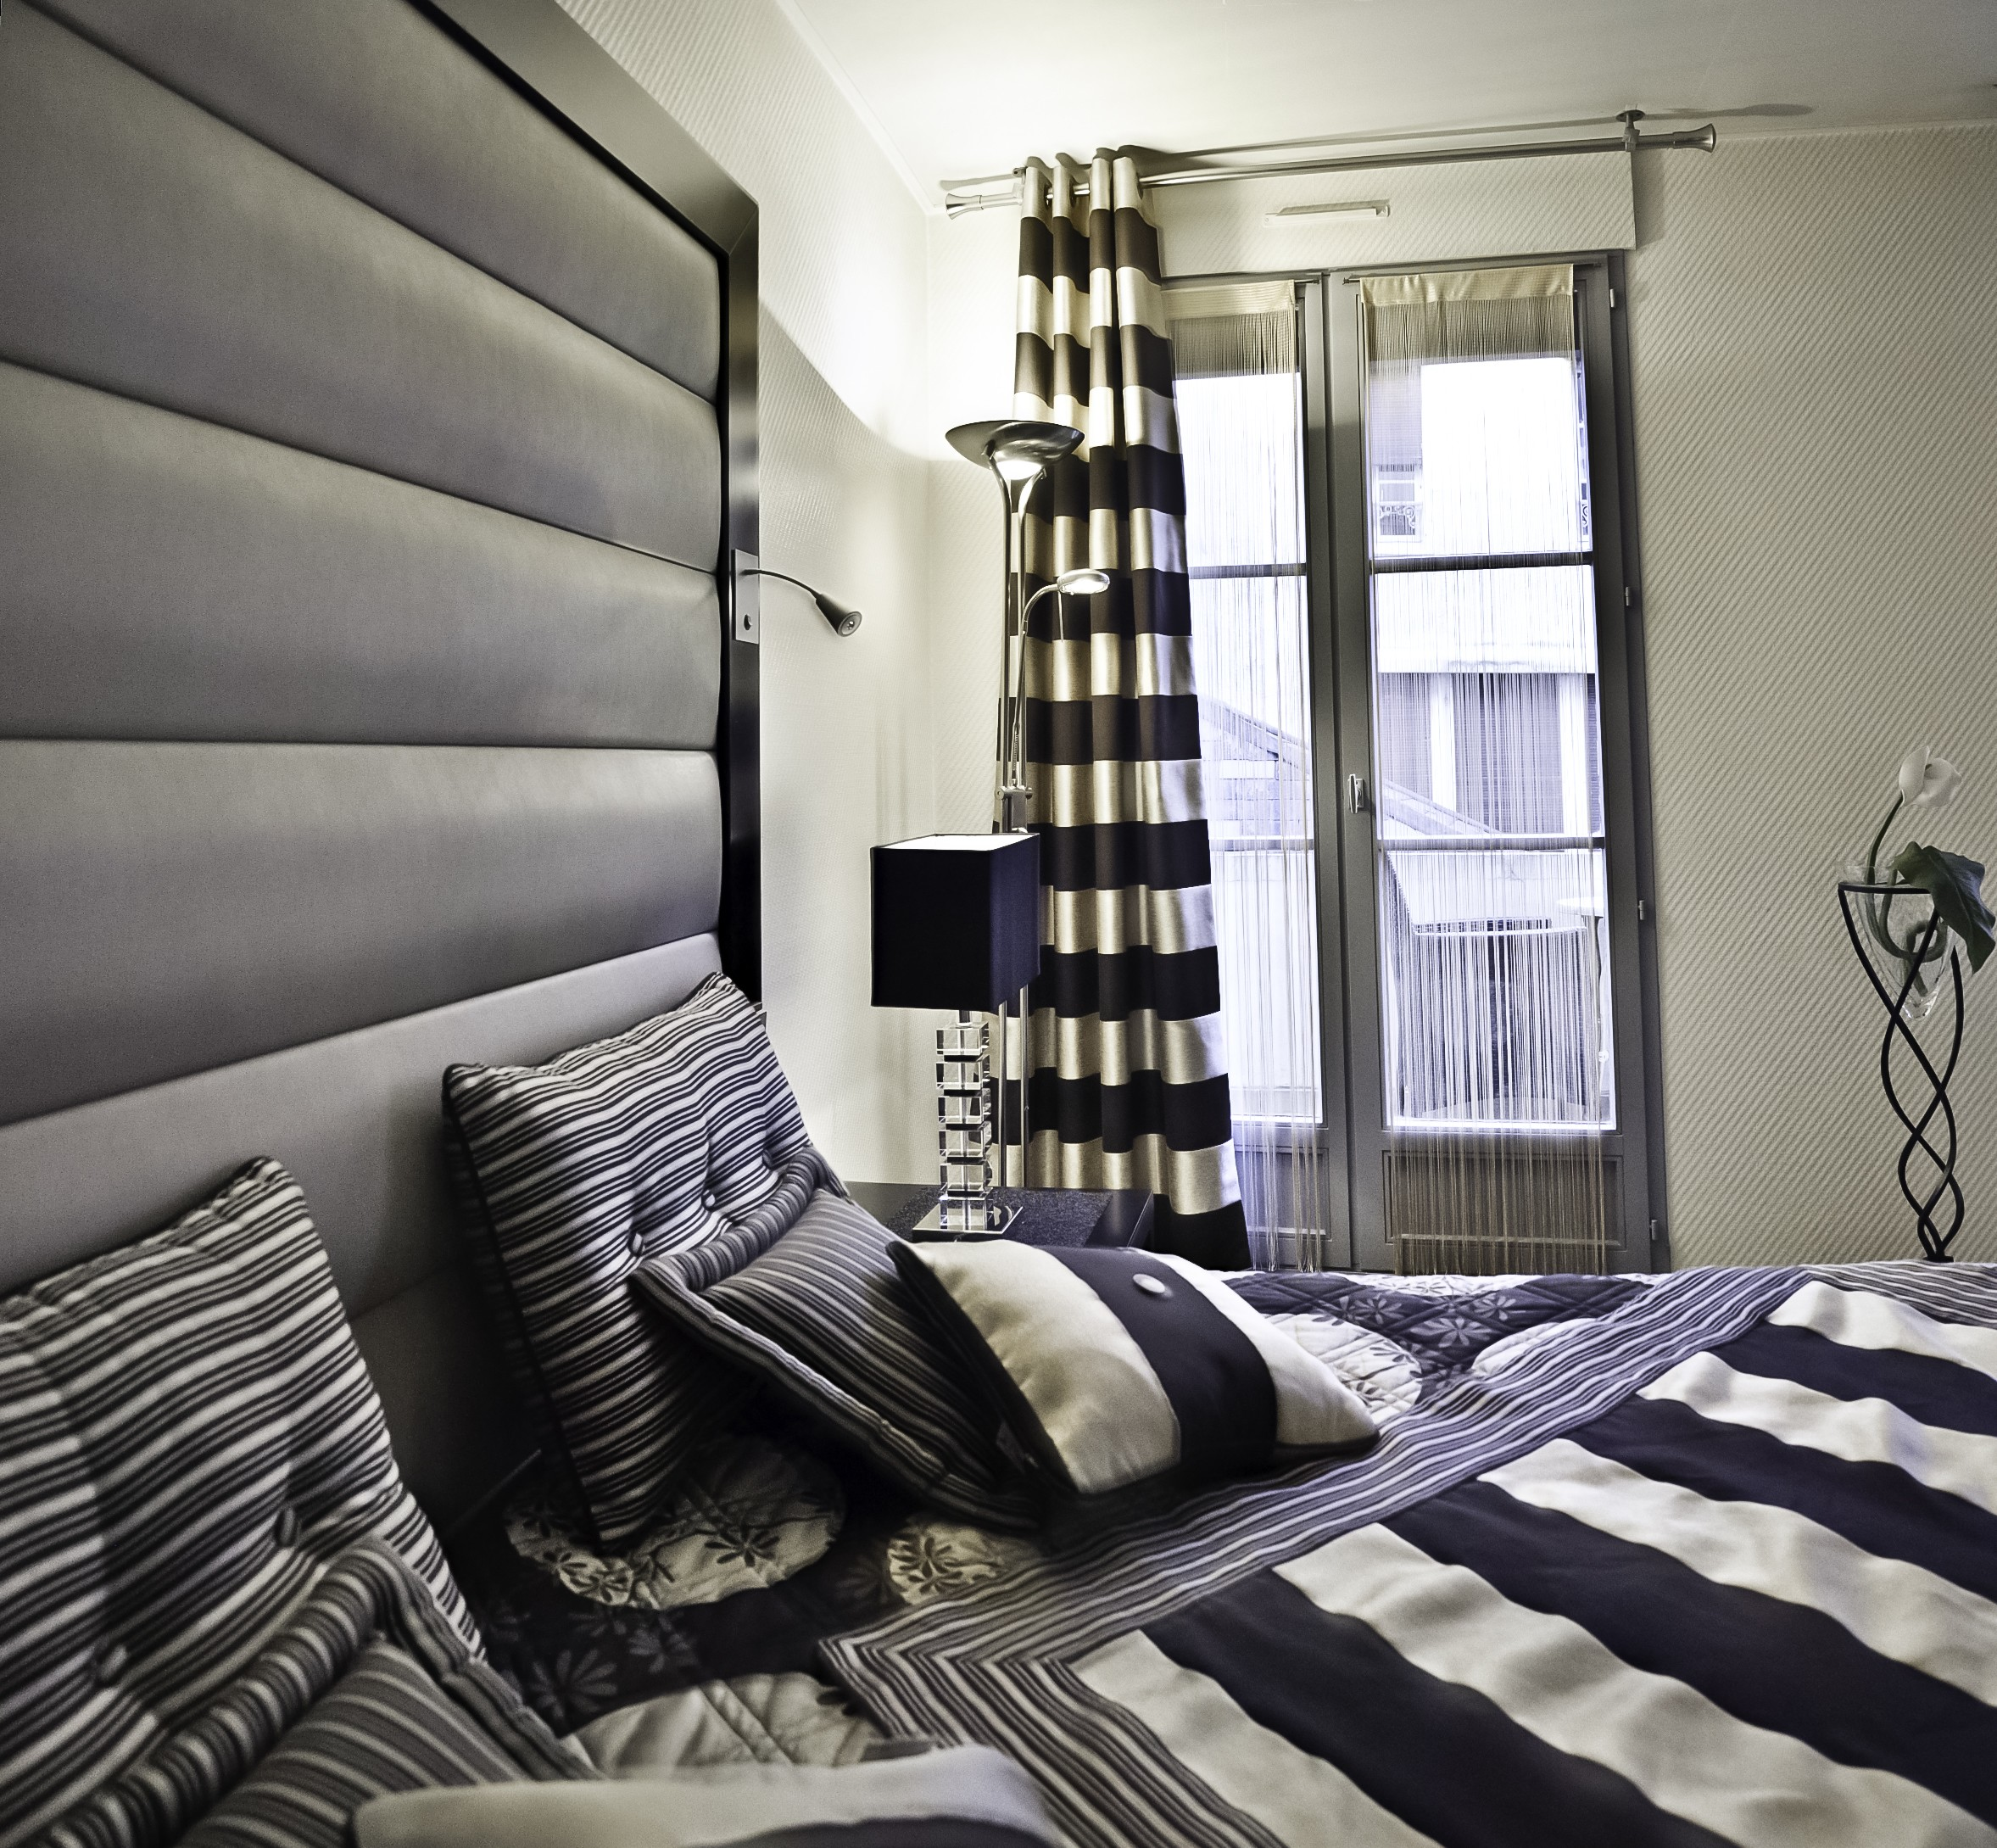 hotel relais saint jean troyes aube champagne. Black Bedroom Furniture Sets. Home Design Ideas